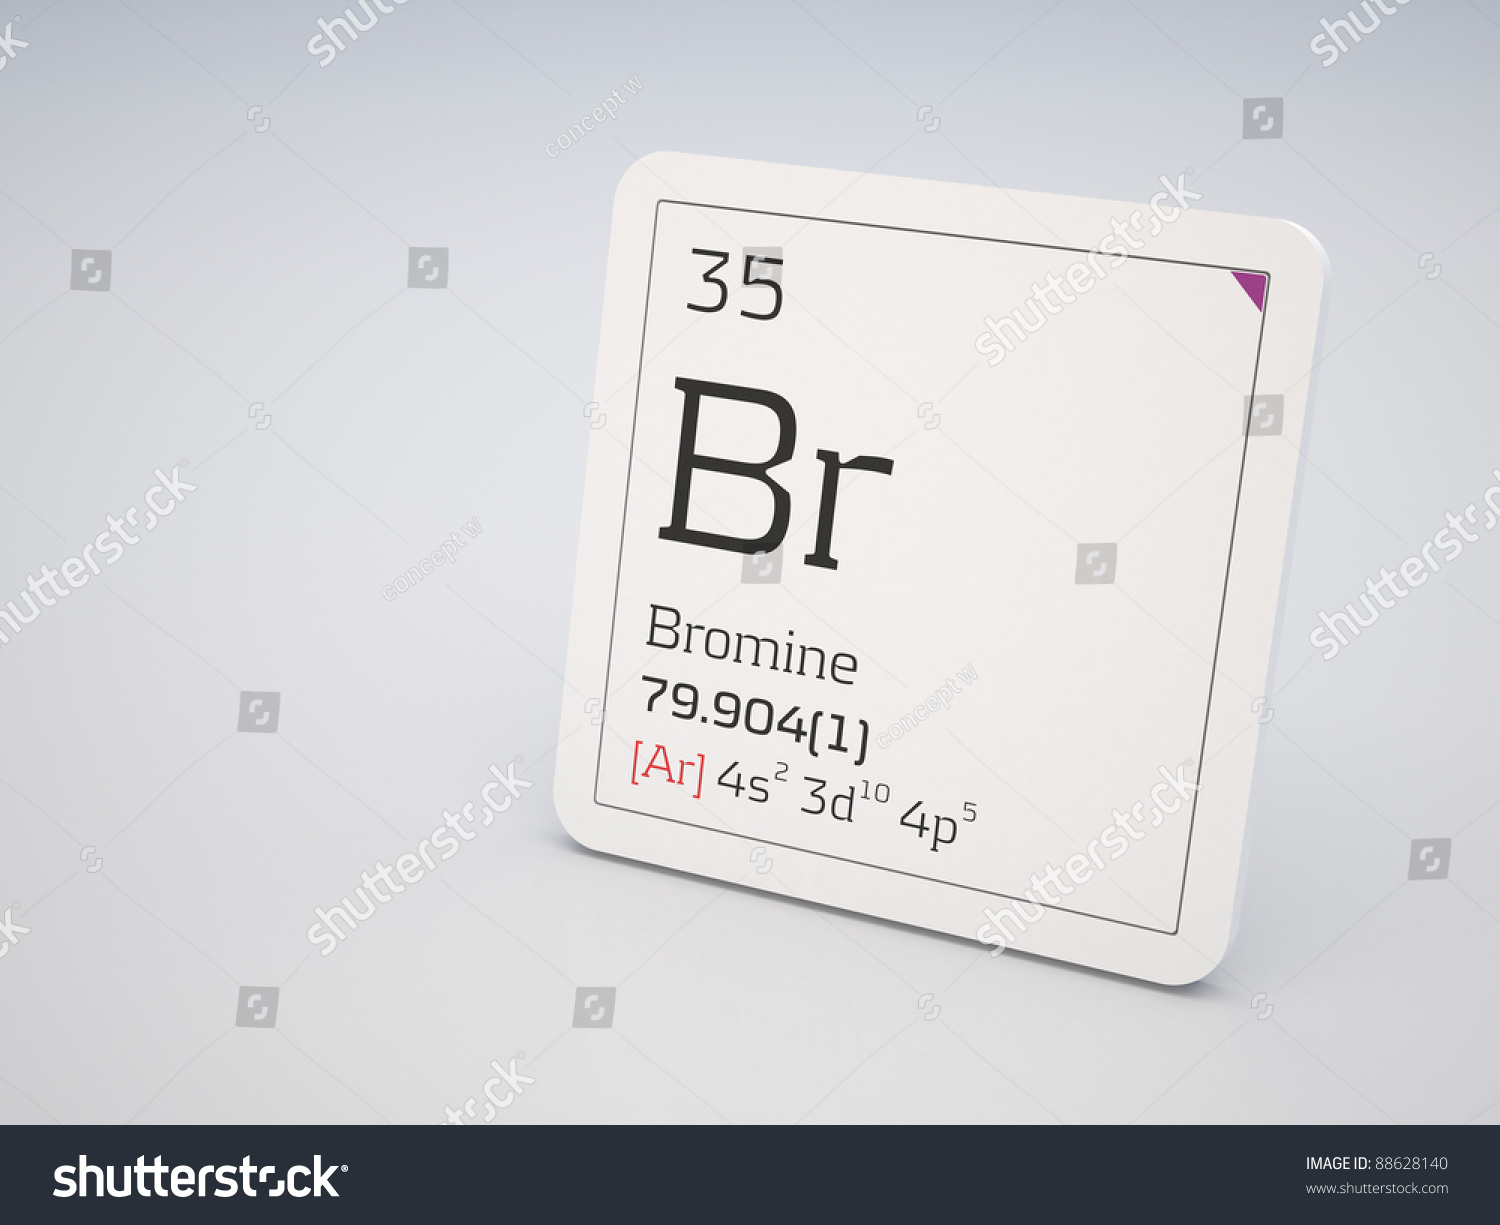 Bromine element periodic table stock illustration 88628140 bromine element of the periodic table gamestrikefo Choice Image